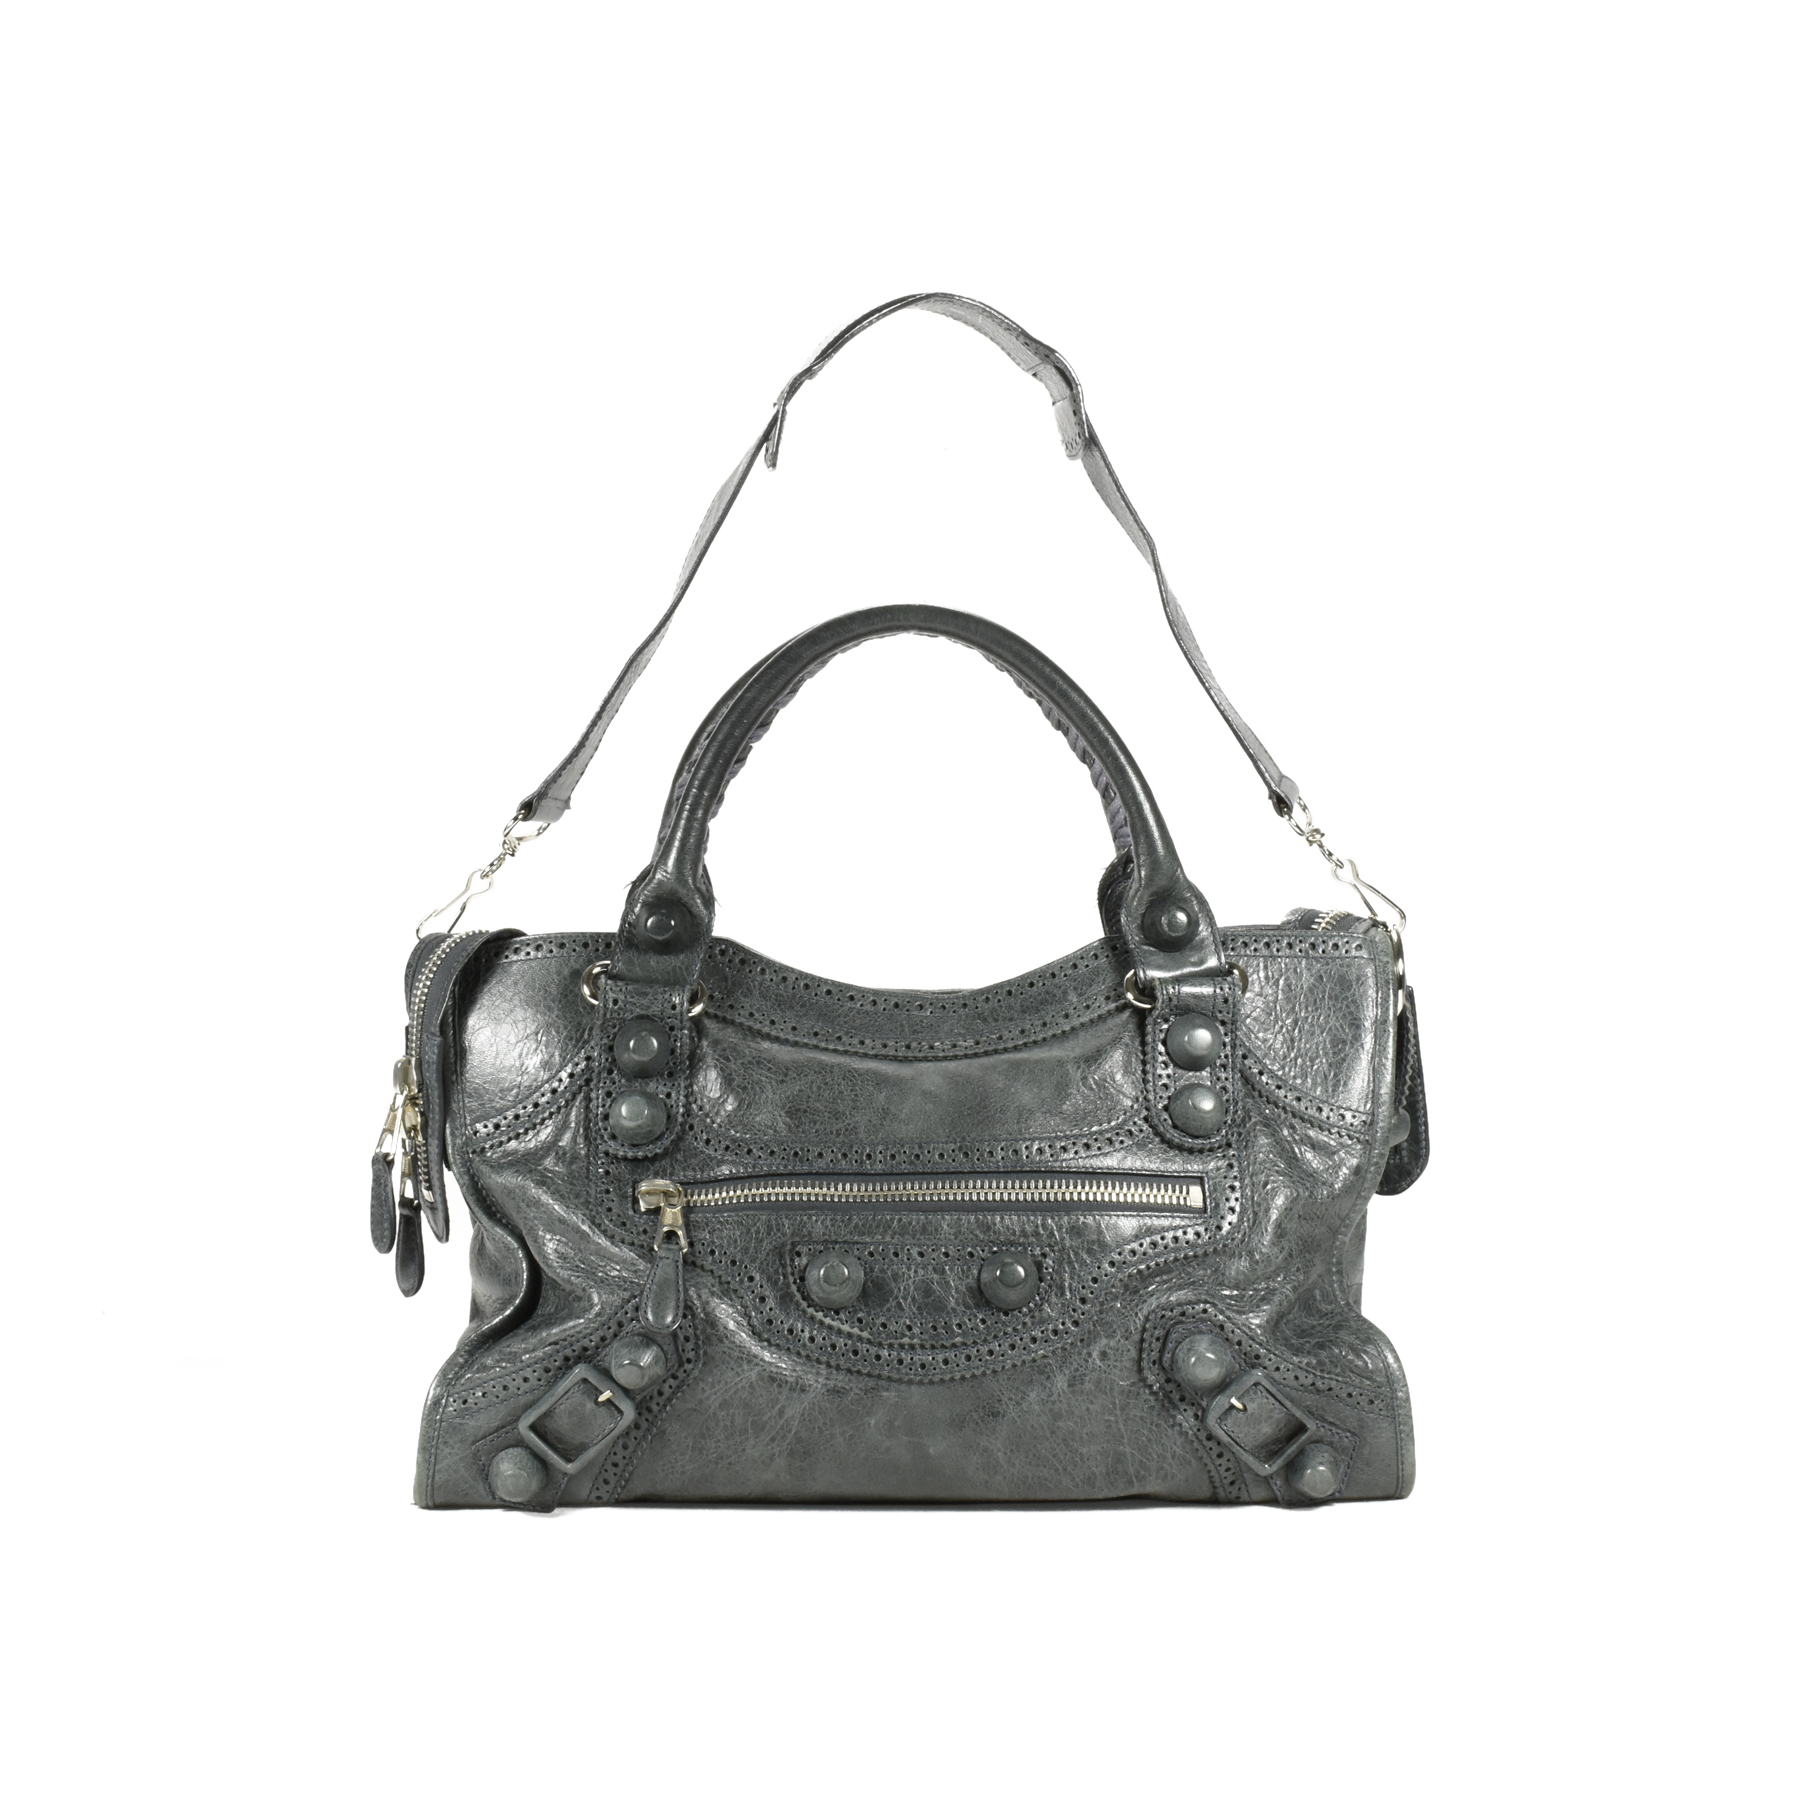 01390c2690 Authentic Second Hand Balenciaga Motorcycle Covered Giant City Bag  (PSS-200-00894) - THE FIFTH COLLECTION